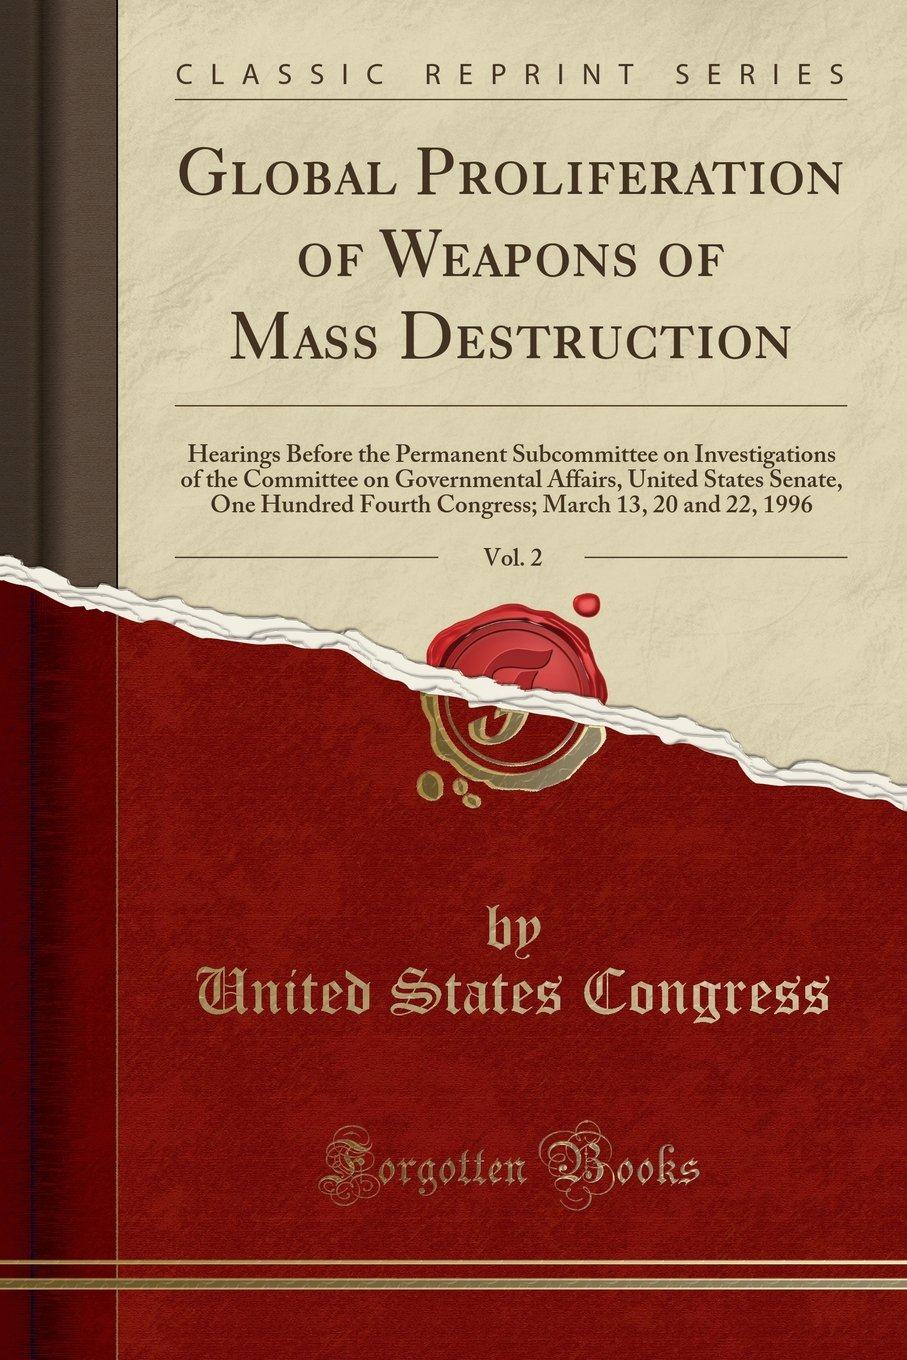 Global Proliferation of Weapons of Mass Destruction, Vol. 2: Hearings Before the Permanent Subcommittee on Investigations of the Committee on ... Fourth Congress; March 13, 20 and 22, 1996 pdf